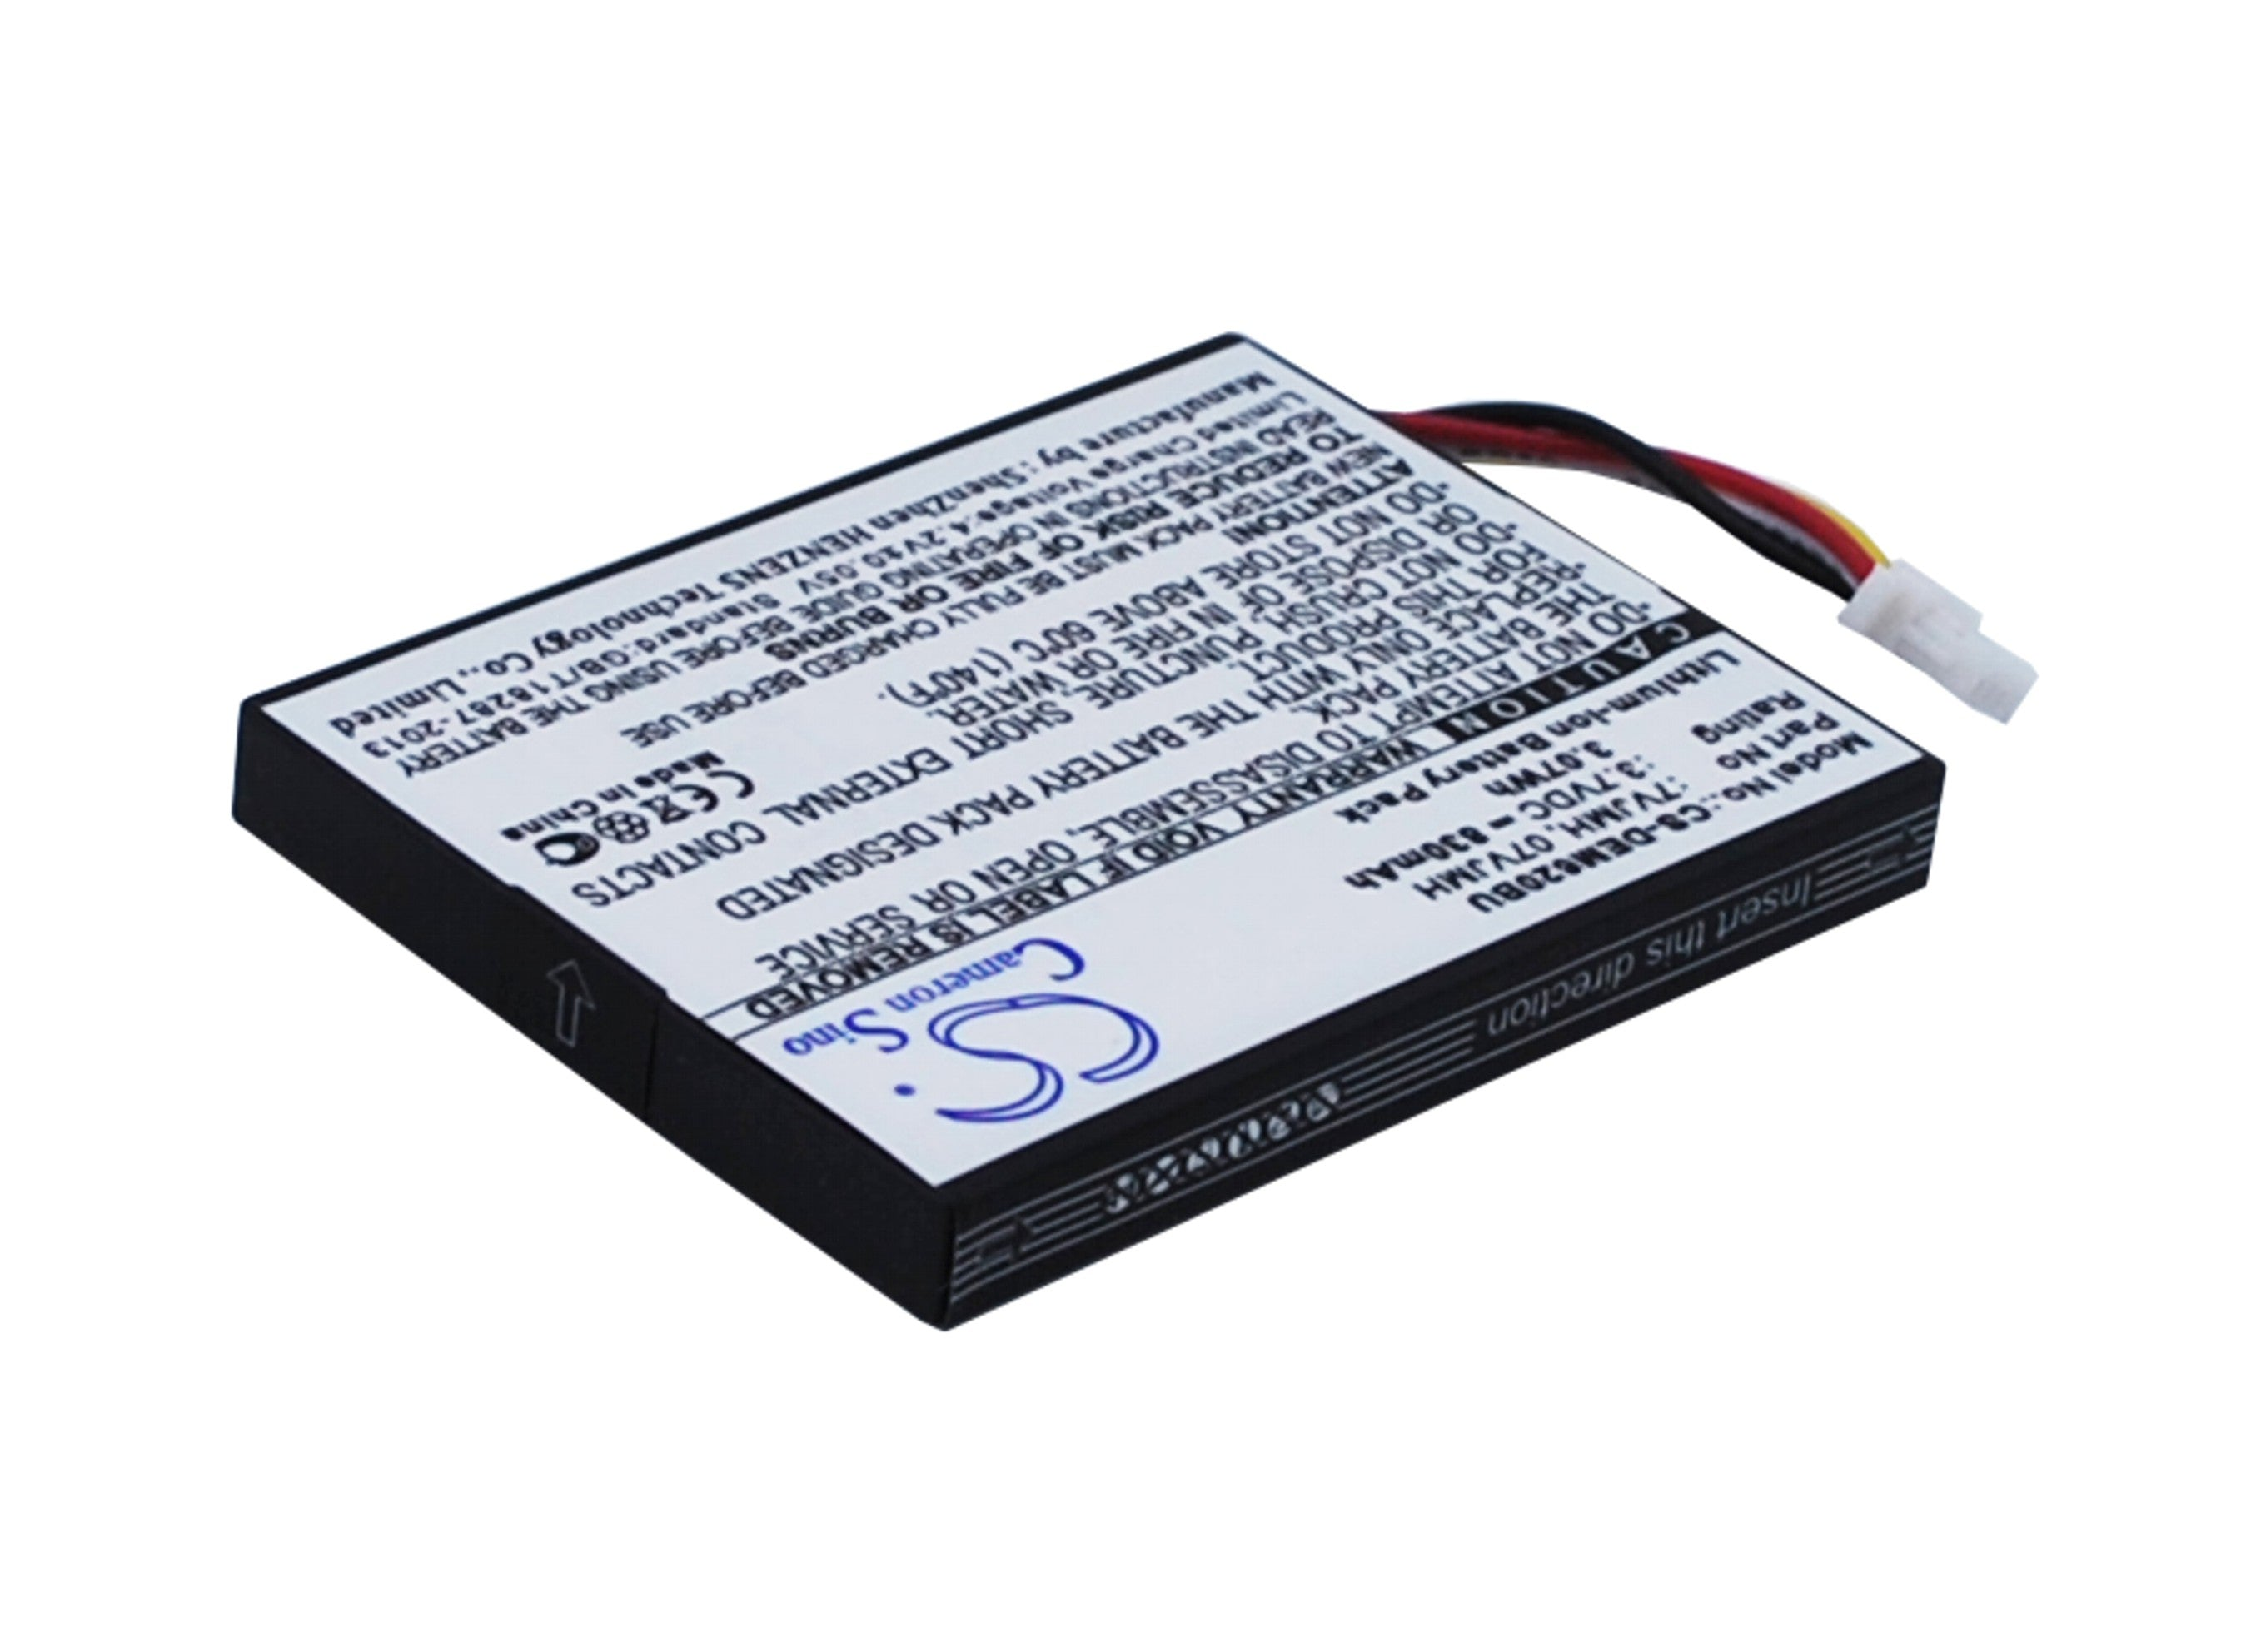 Battery for DELL PERC H710, PERC H710P, PERC H810, PowerEdge M620, Pow